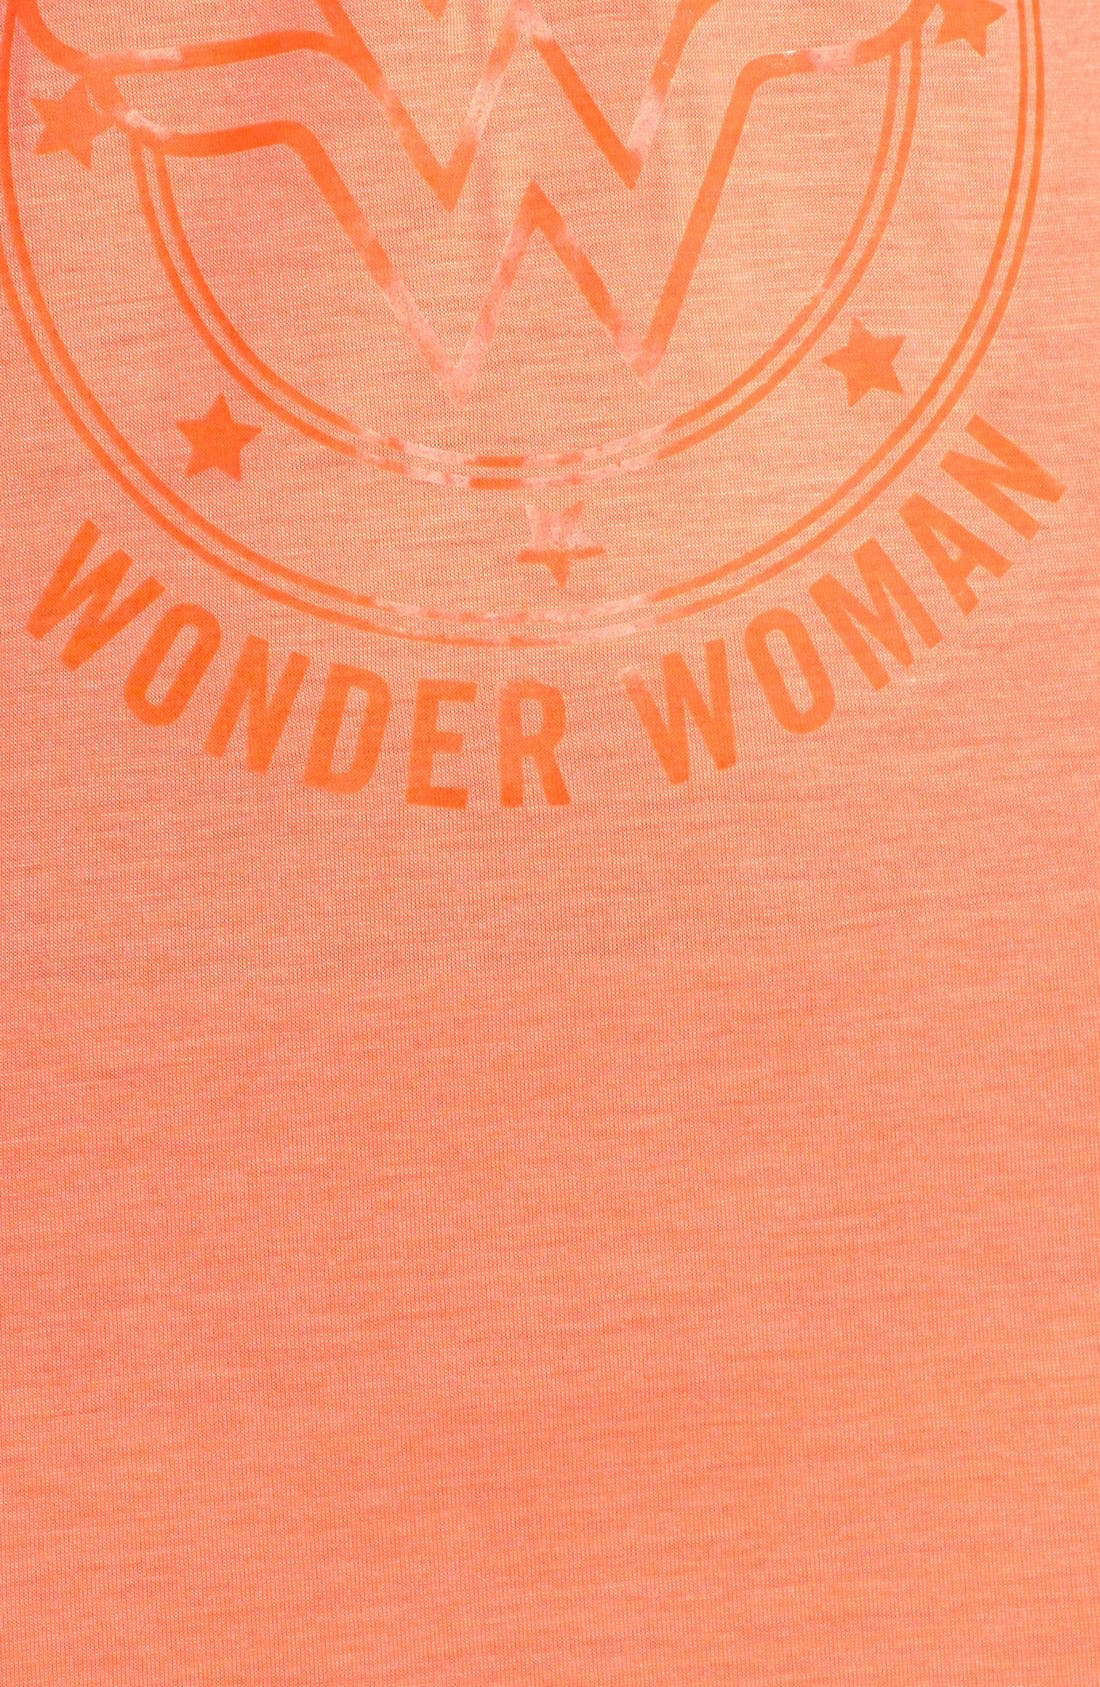 Alternate Image 4  - Under Armour 'Alter Ego - Wonder Woman' Racerback Tank